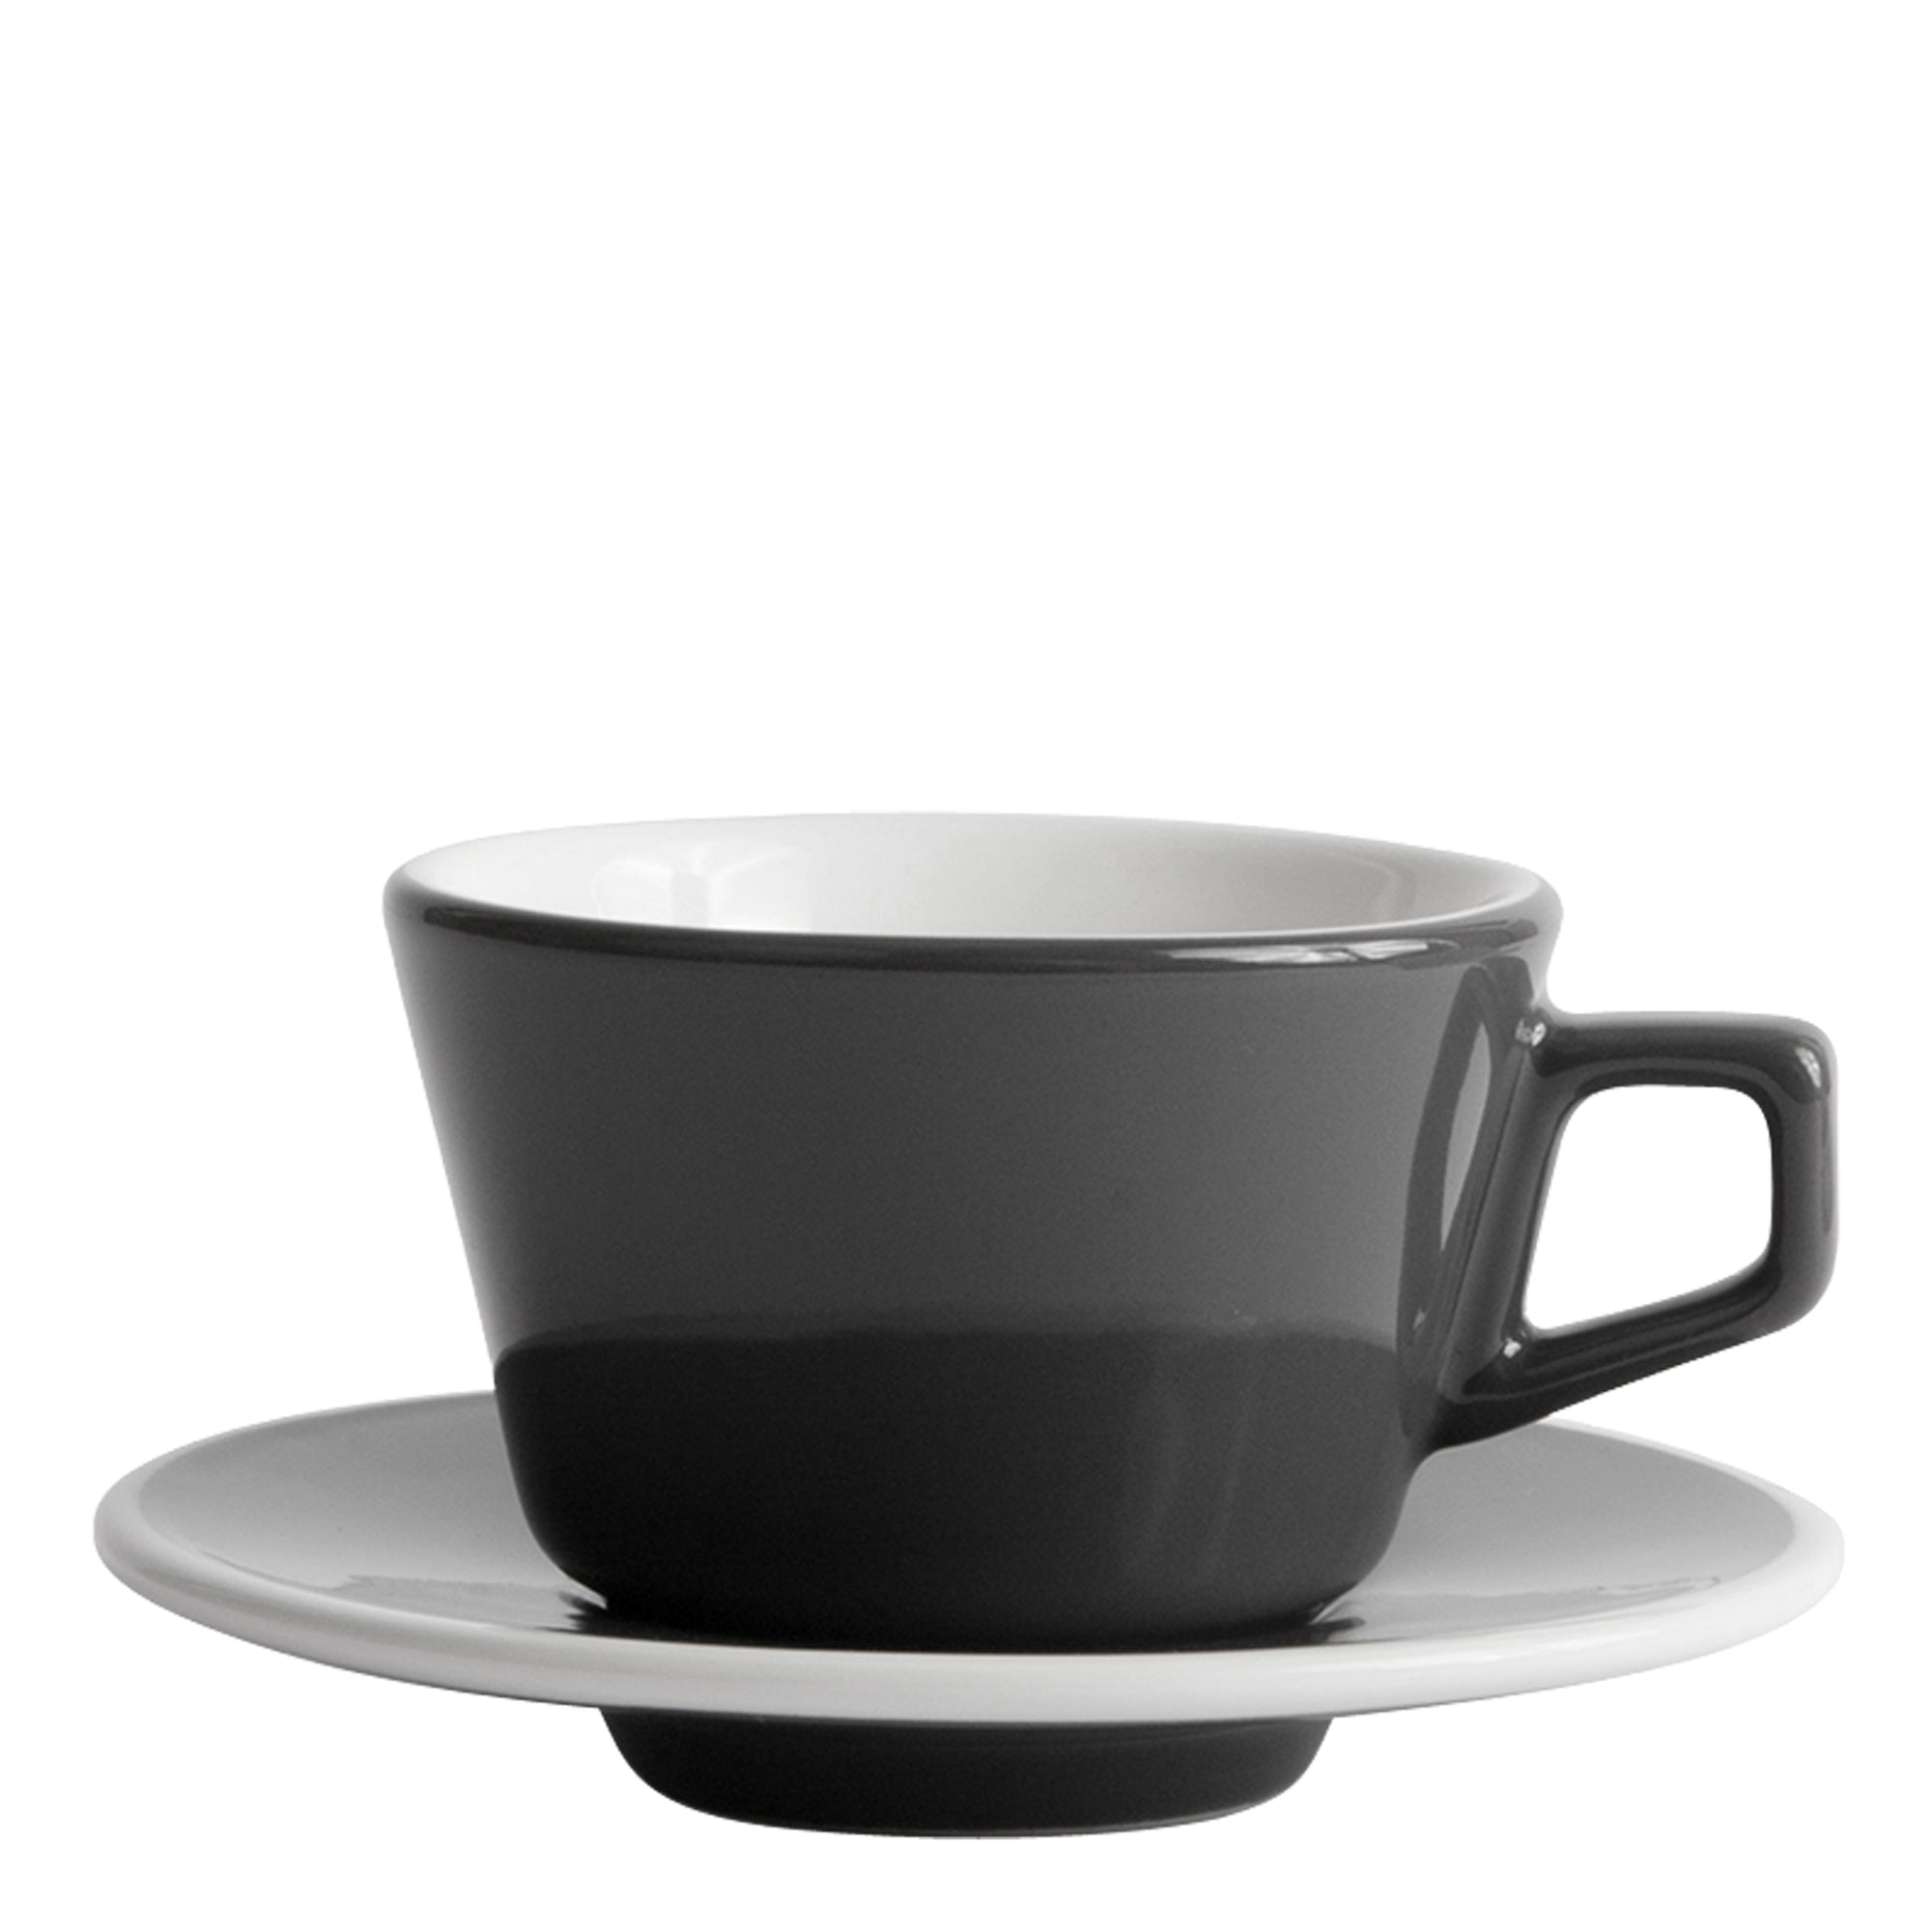 Created Co Angled Espresso 3oz/ 9cl- gray - Espresso Gear